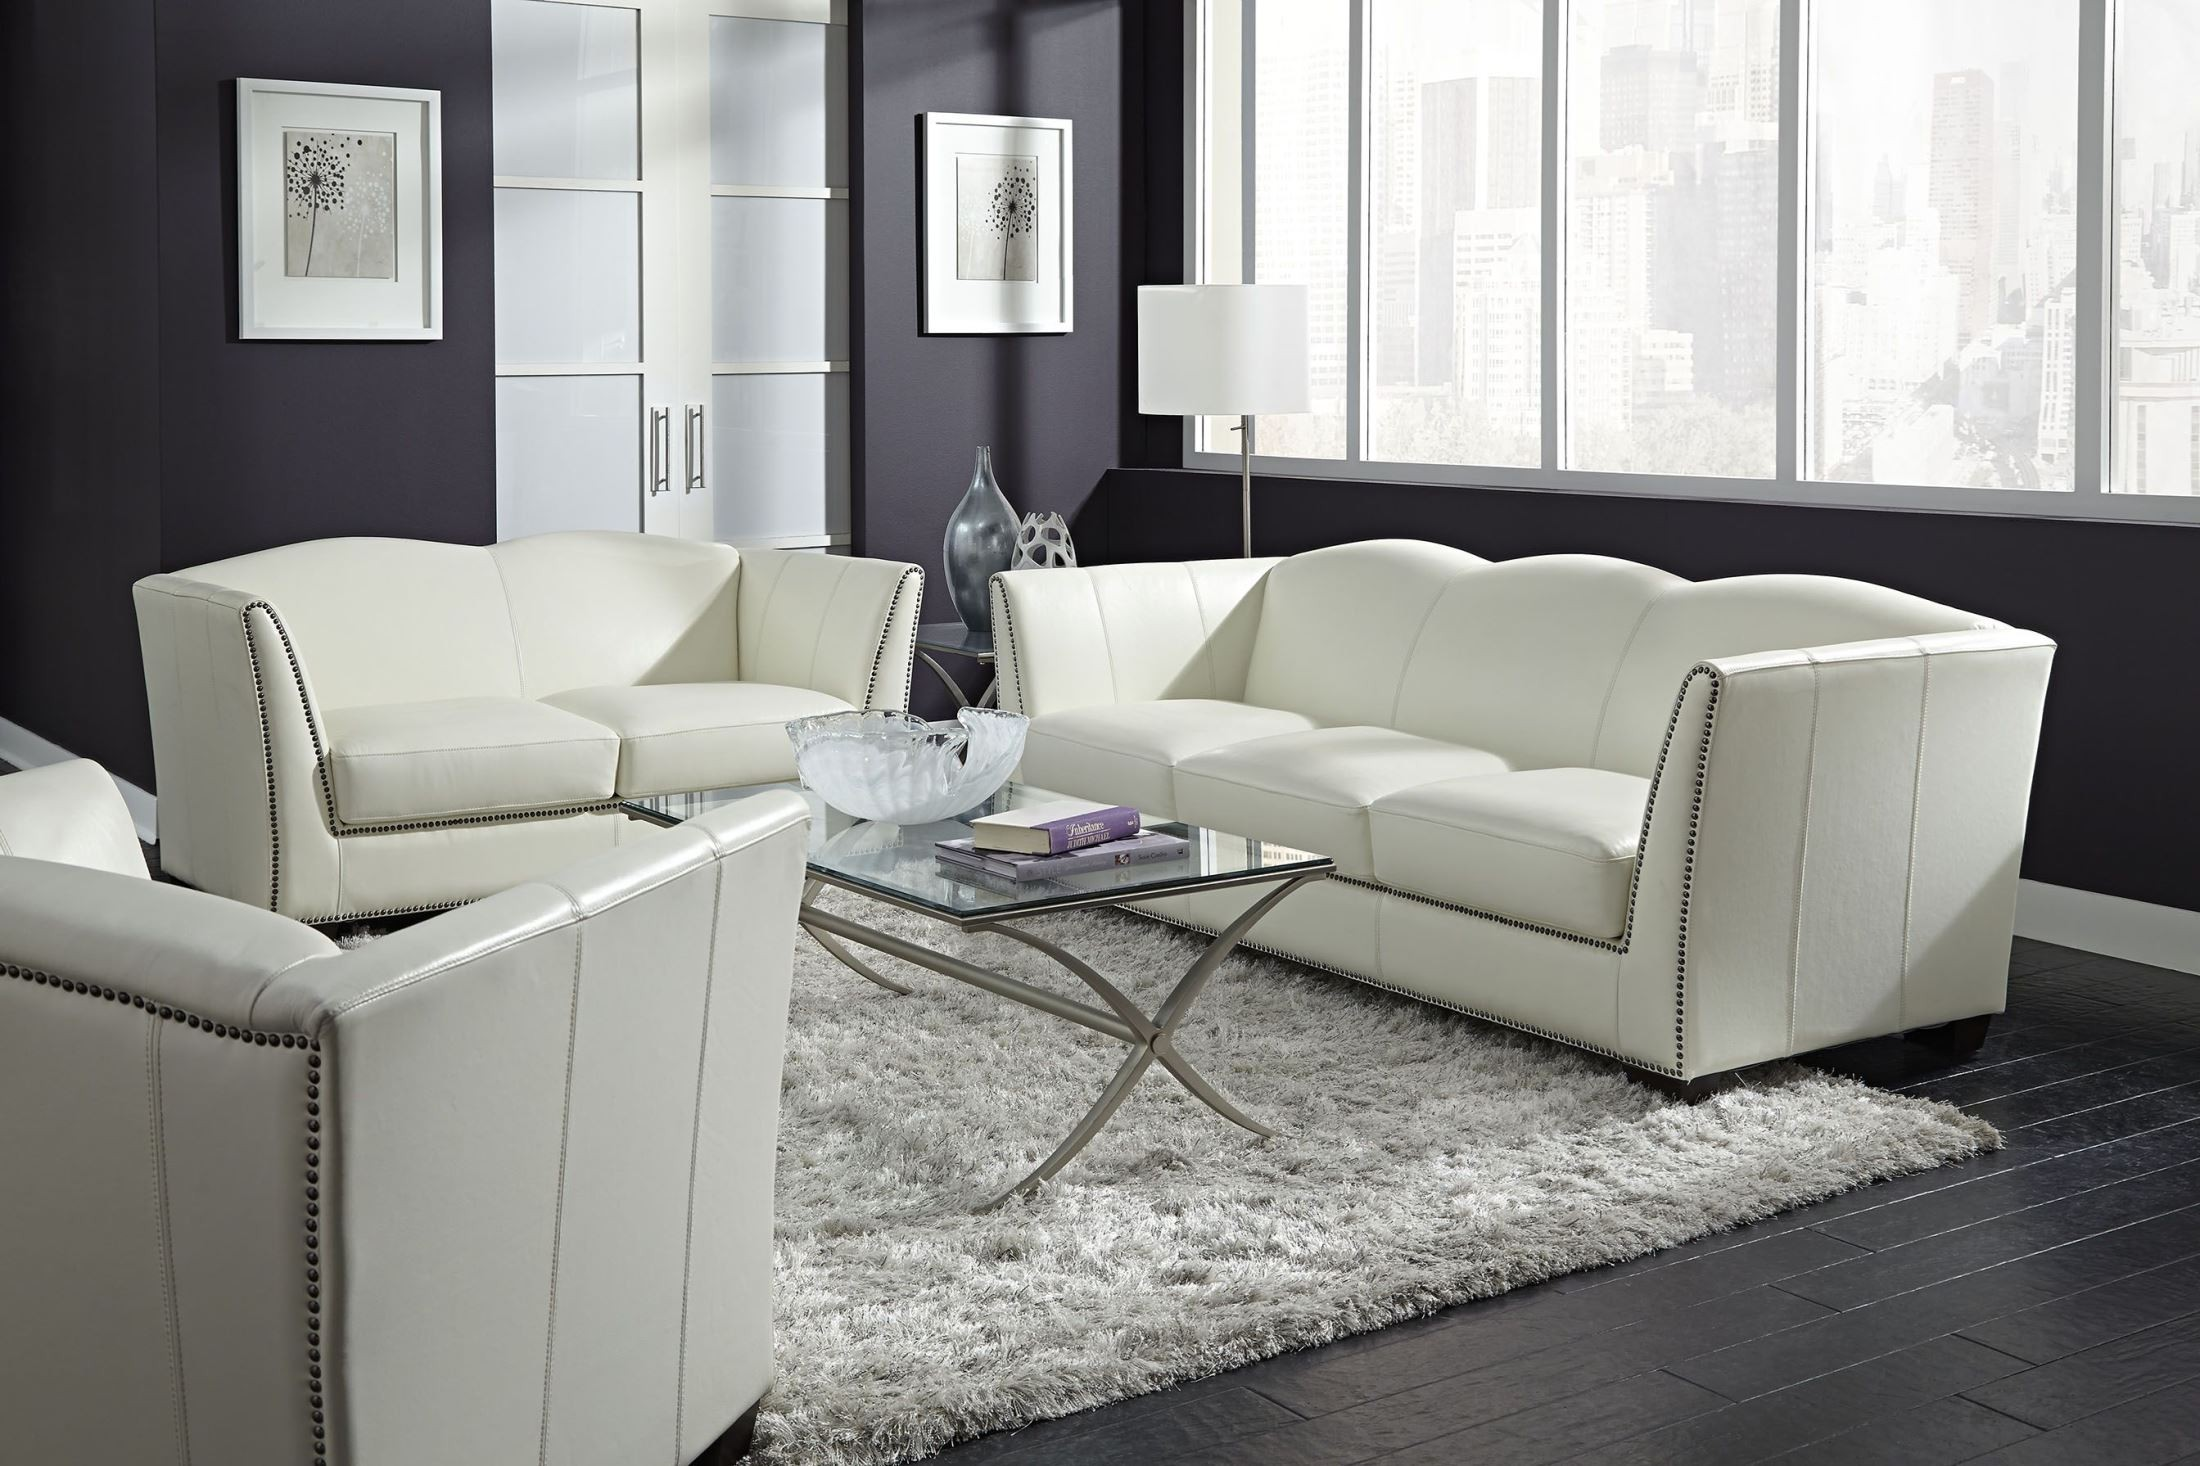 manlyn white leather living room set from lazzaro wh 1327 30 3500 coleman furniture. Black Bedroom Furniture Sets. Home Design Ideas